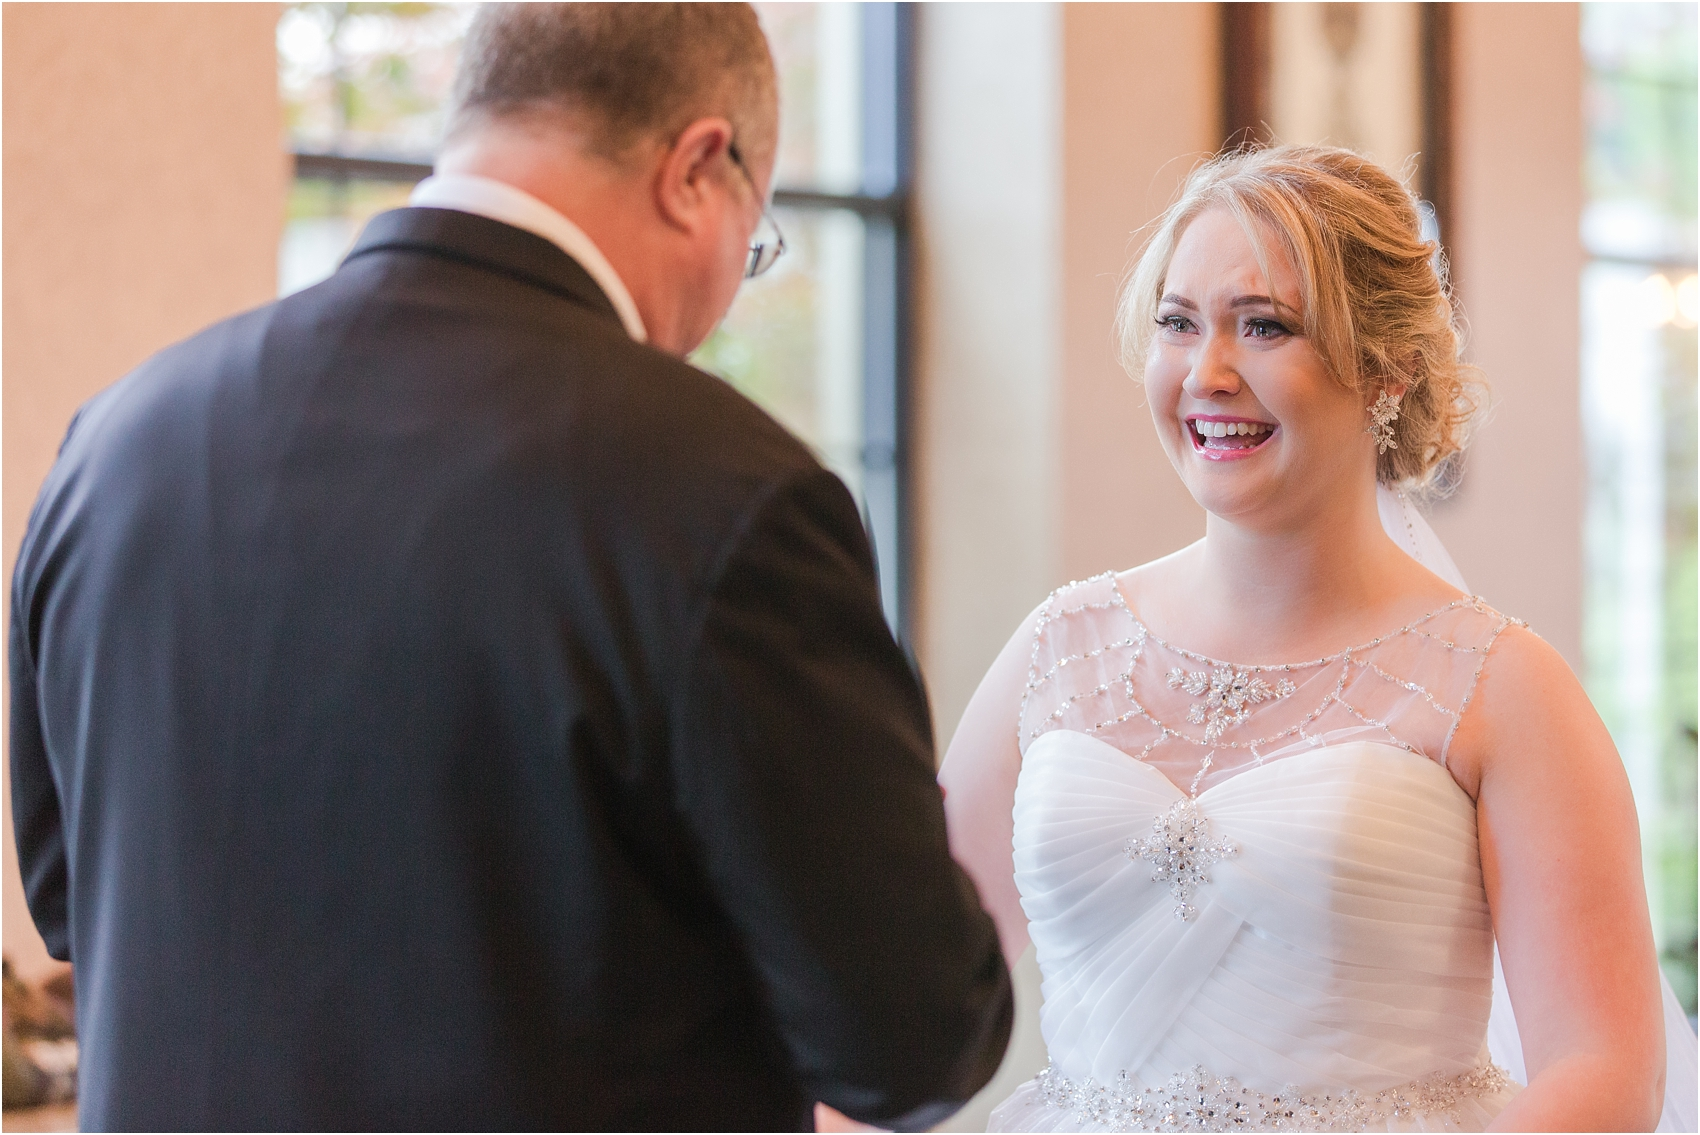 lord-of-the-rings-inspired-wedding-photos-at-crystal-gardens-in-howell-mi-by-courtney-carolyn-photography_0017.jpg